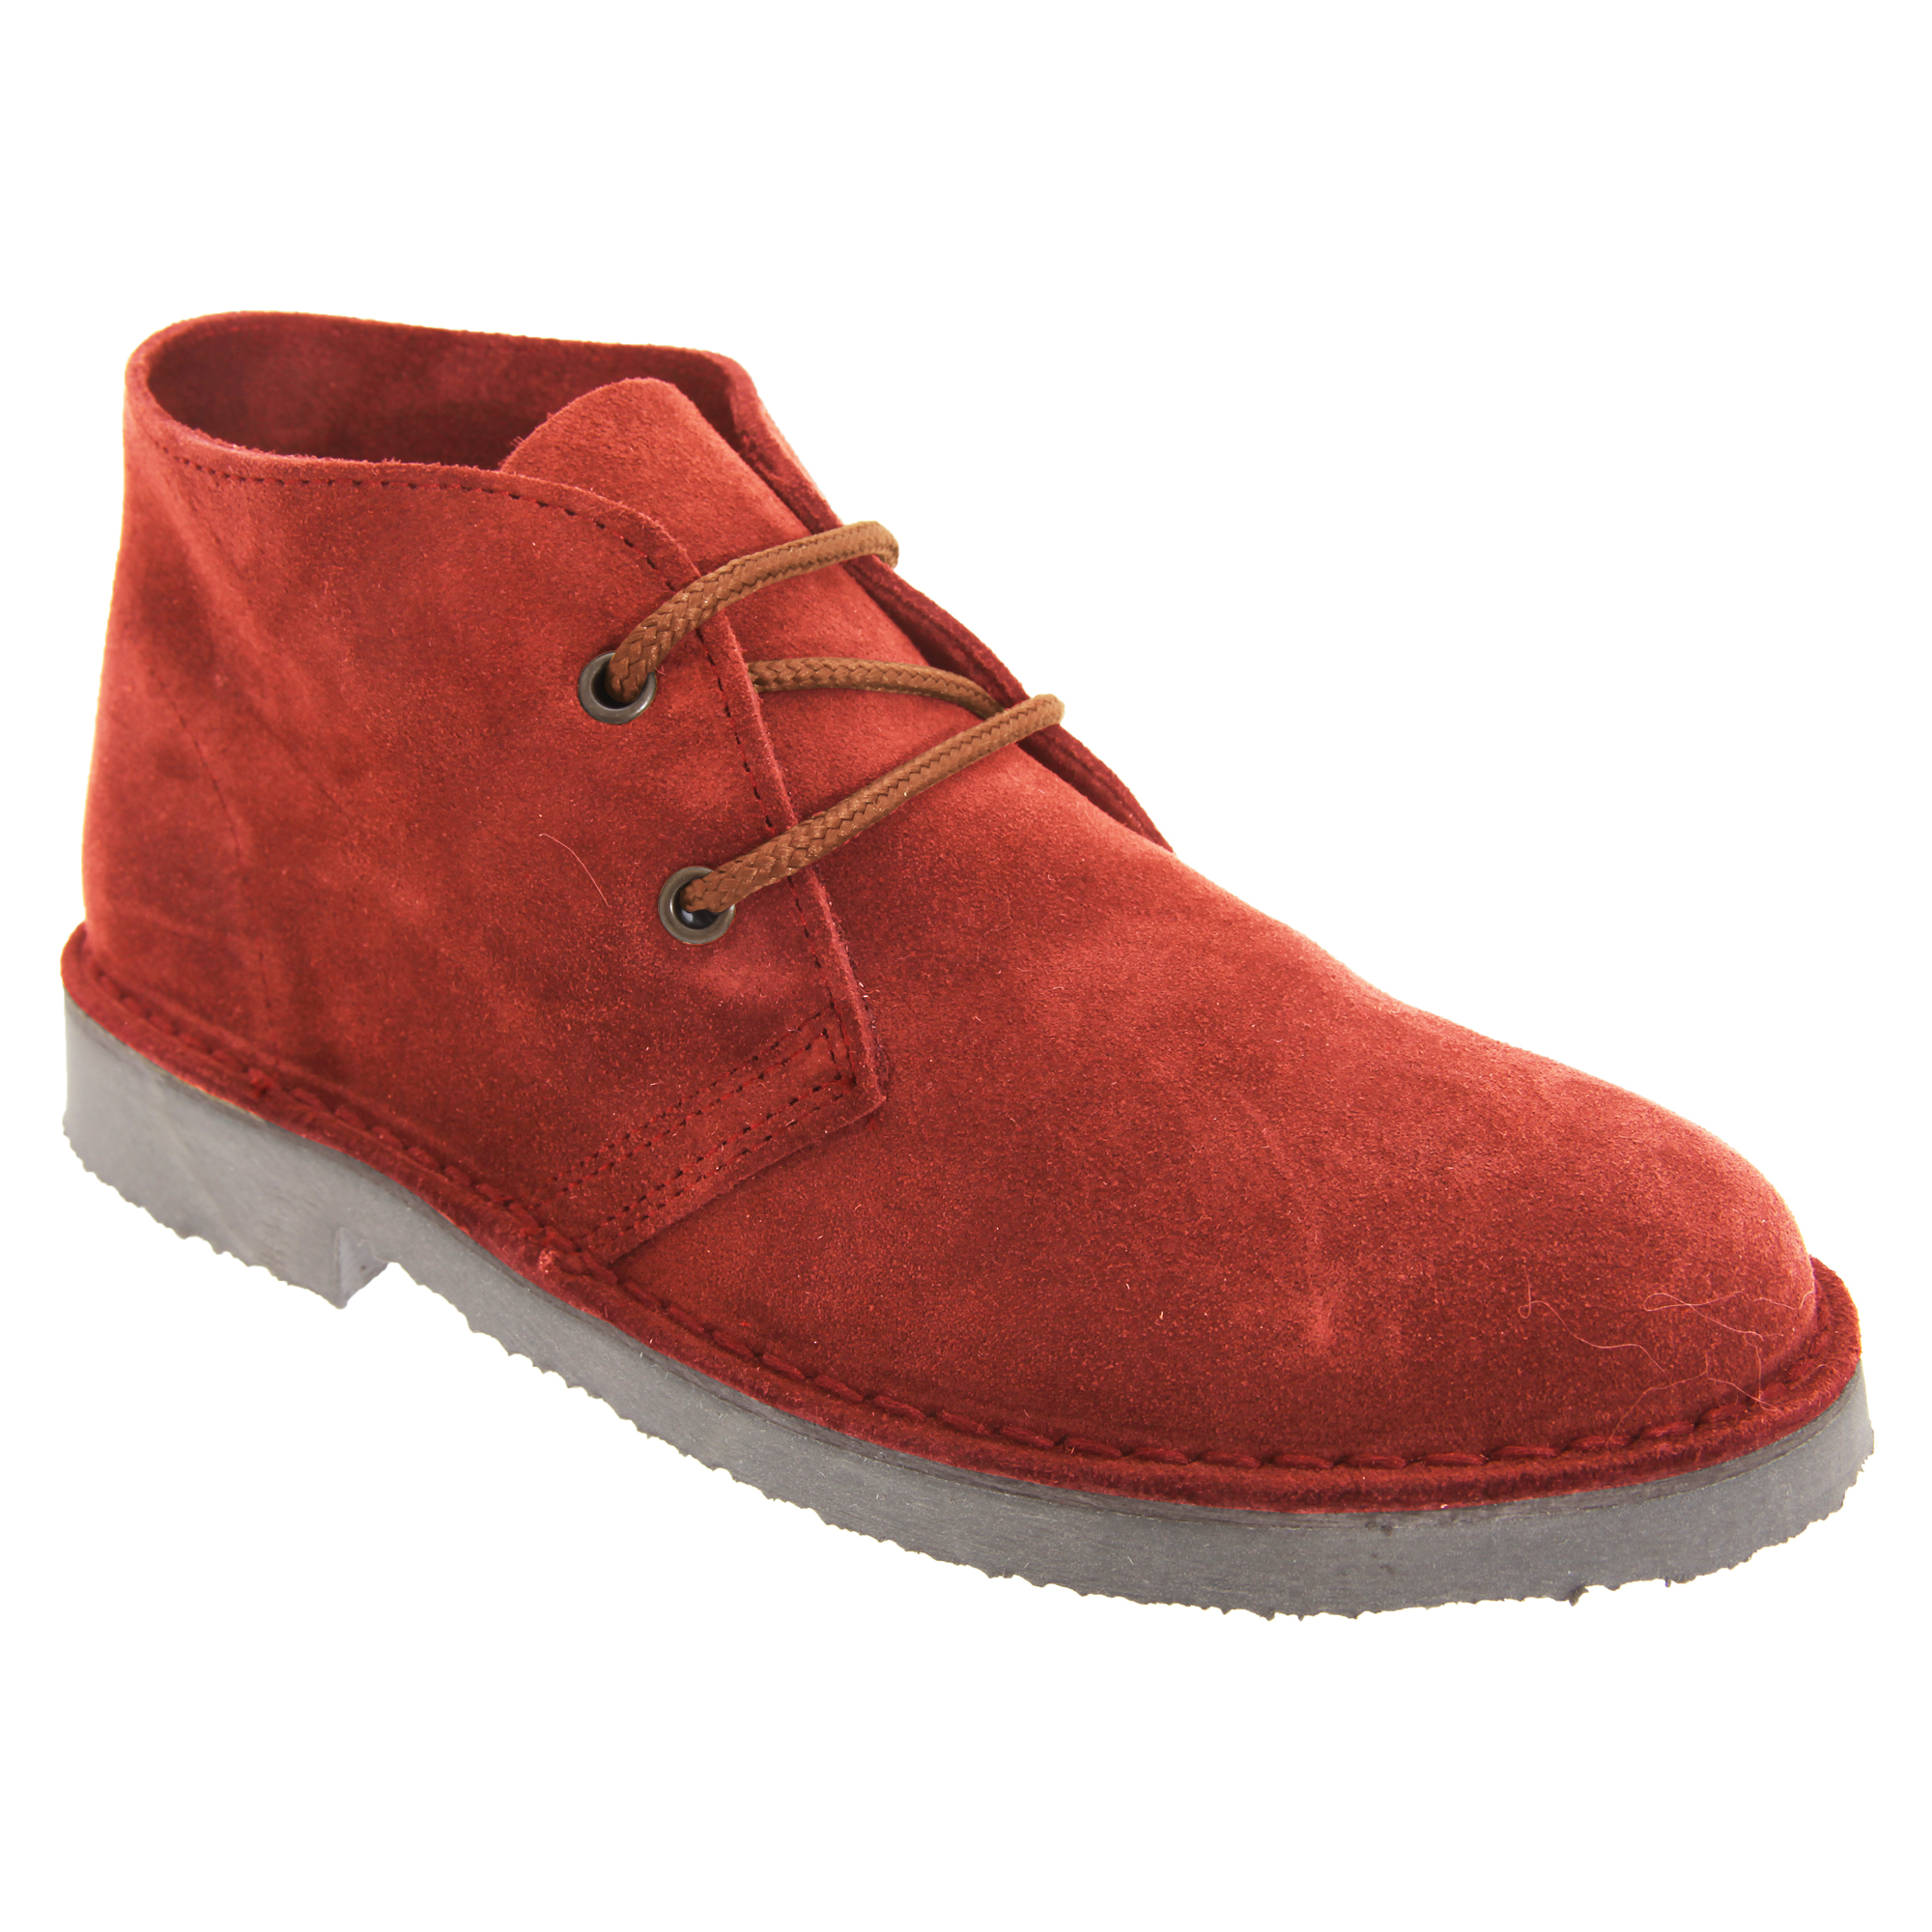 Roamers Adults Unisex Real Suede Unlined Desert Boots (8 UK) (Red)